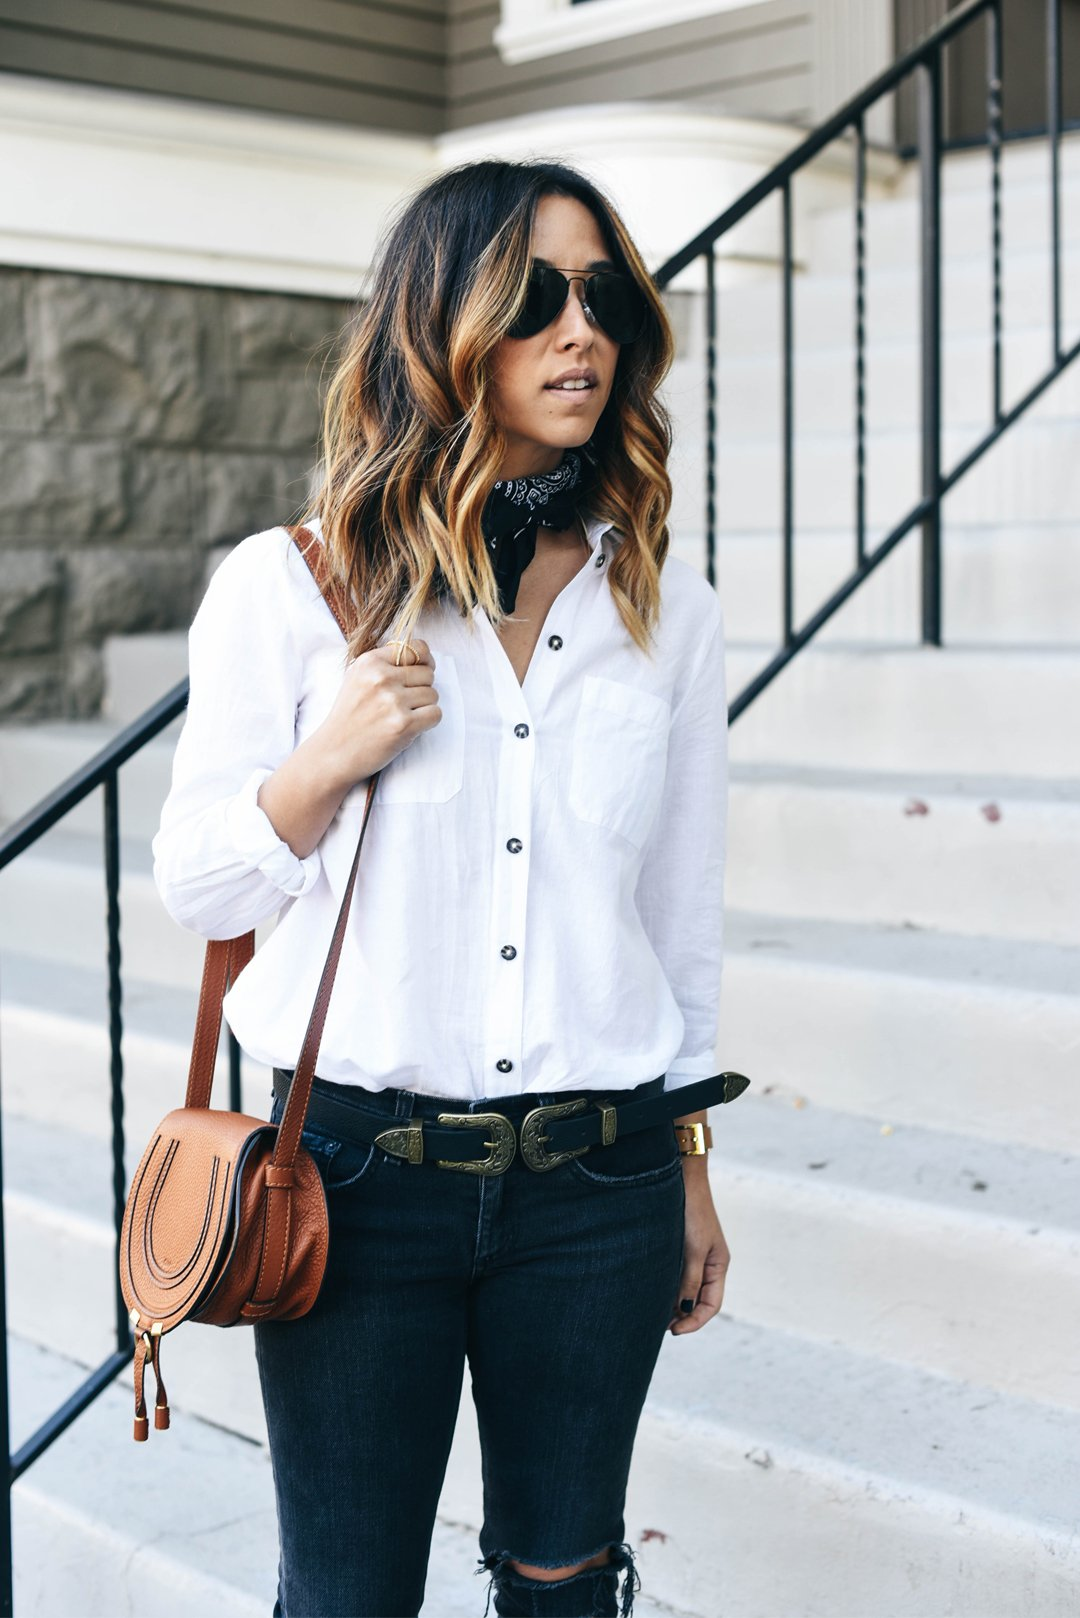 crystalin-marie-wearing-topshop-white-button-down